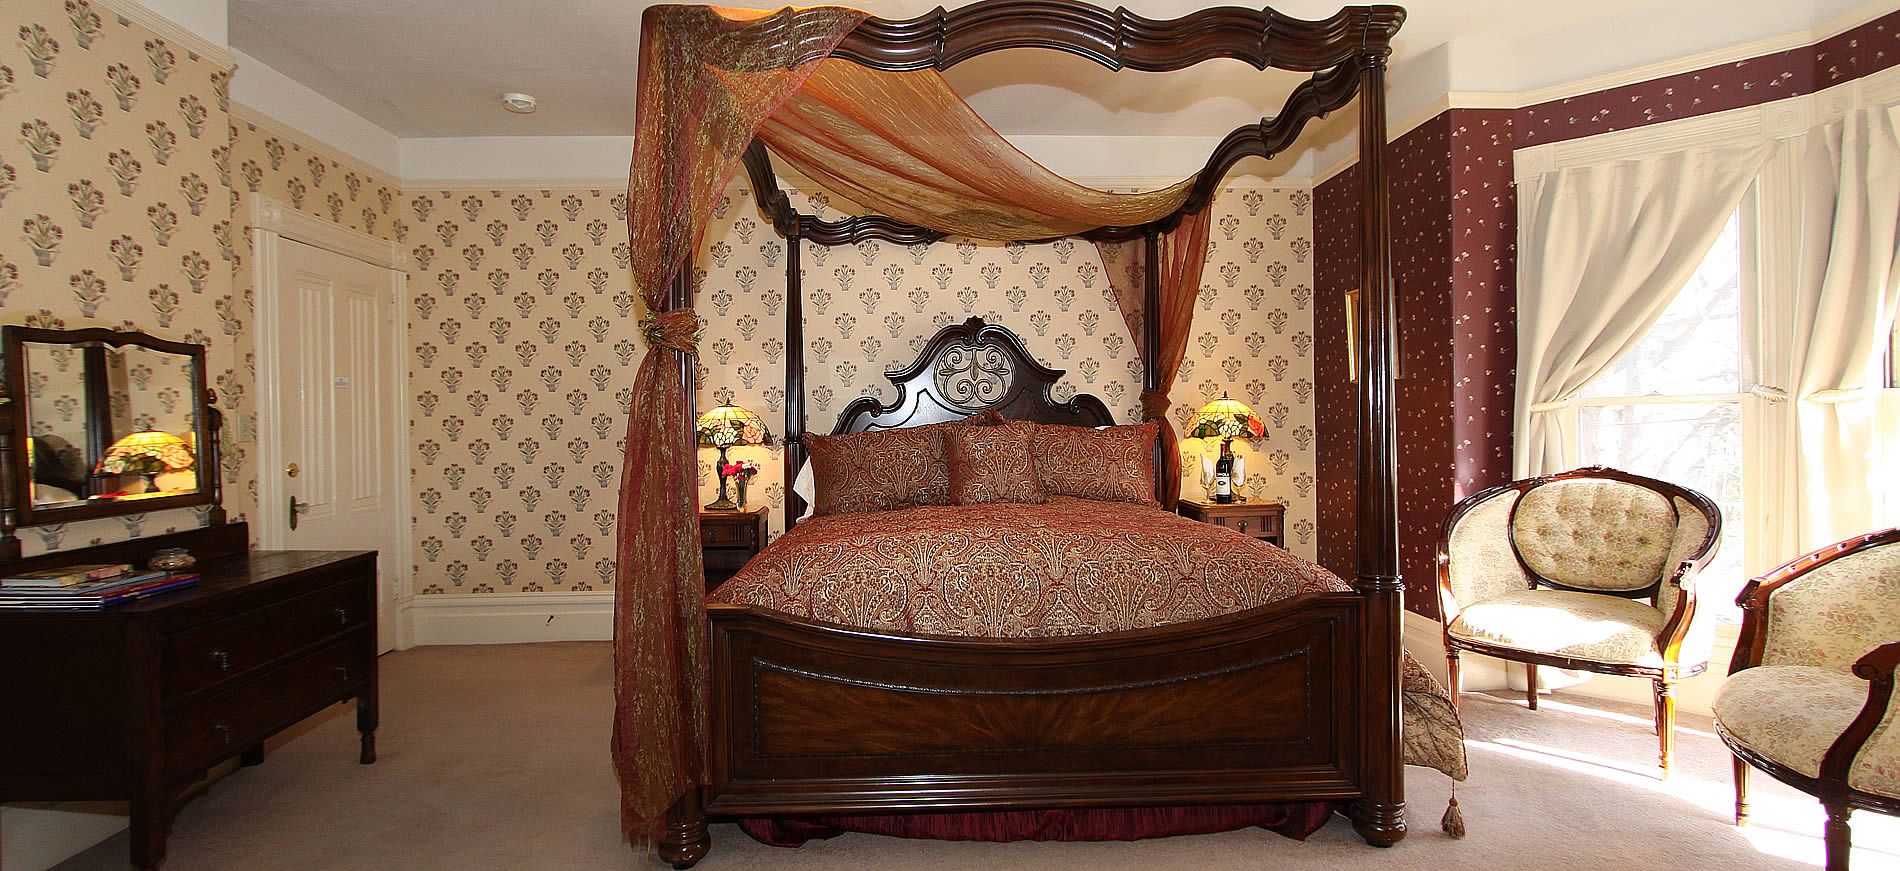 mary's delight guestroom at hennessey house with four poster bed and dresser plus two chairs